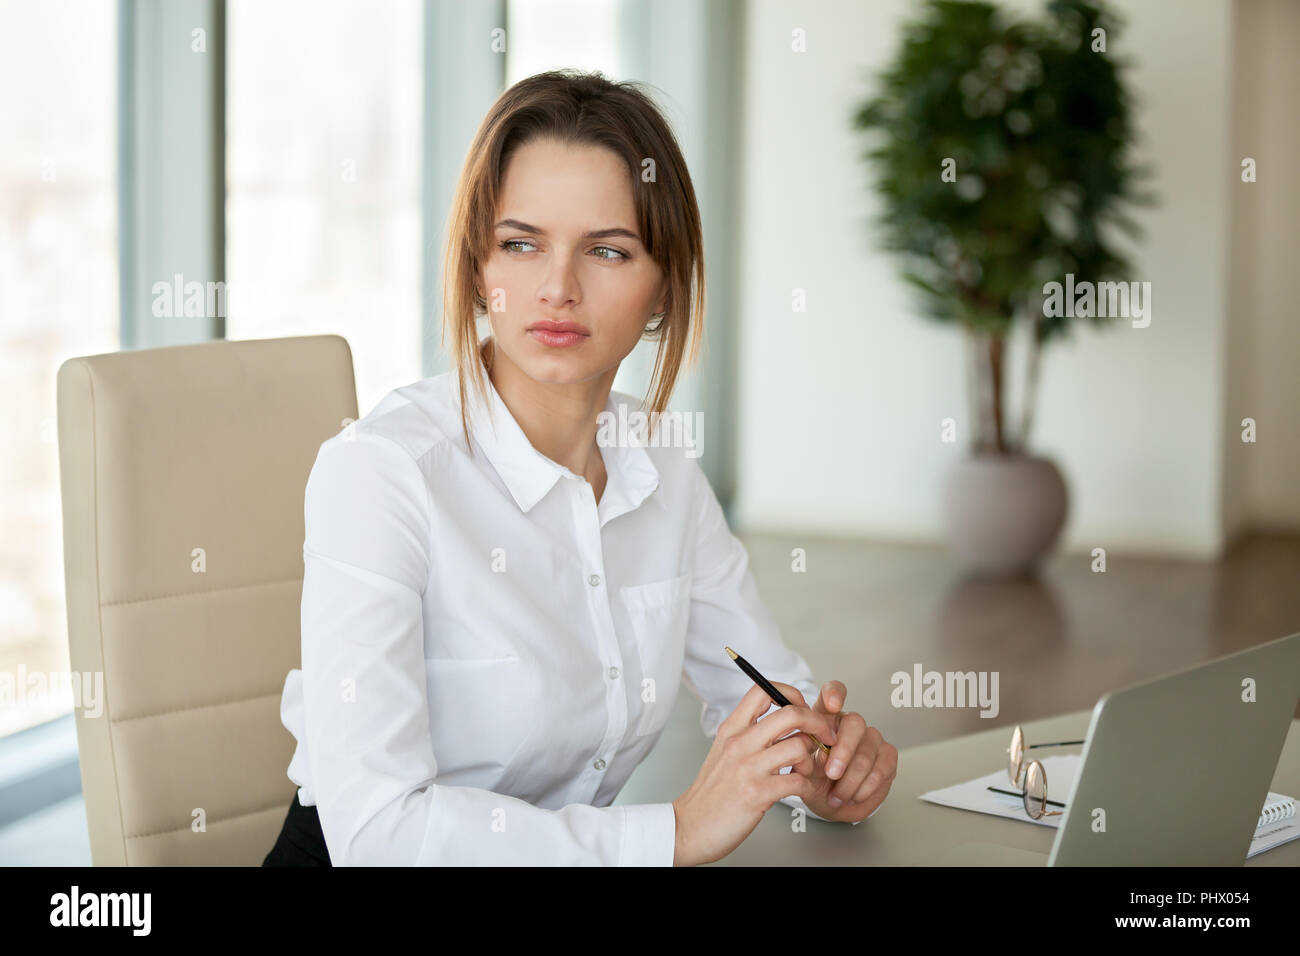 Thoughtful serious businesswoman thinking of problem feeling lac - Stock Image